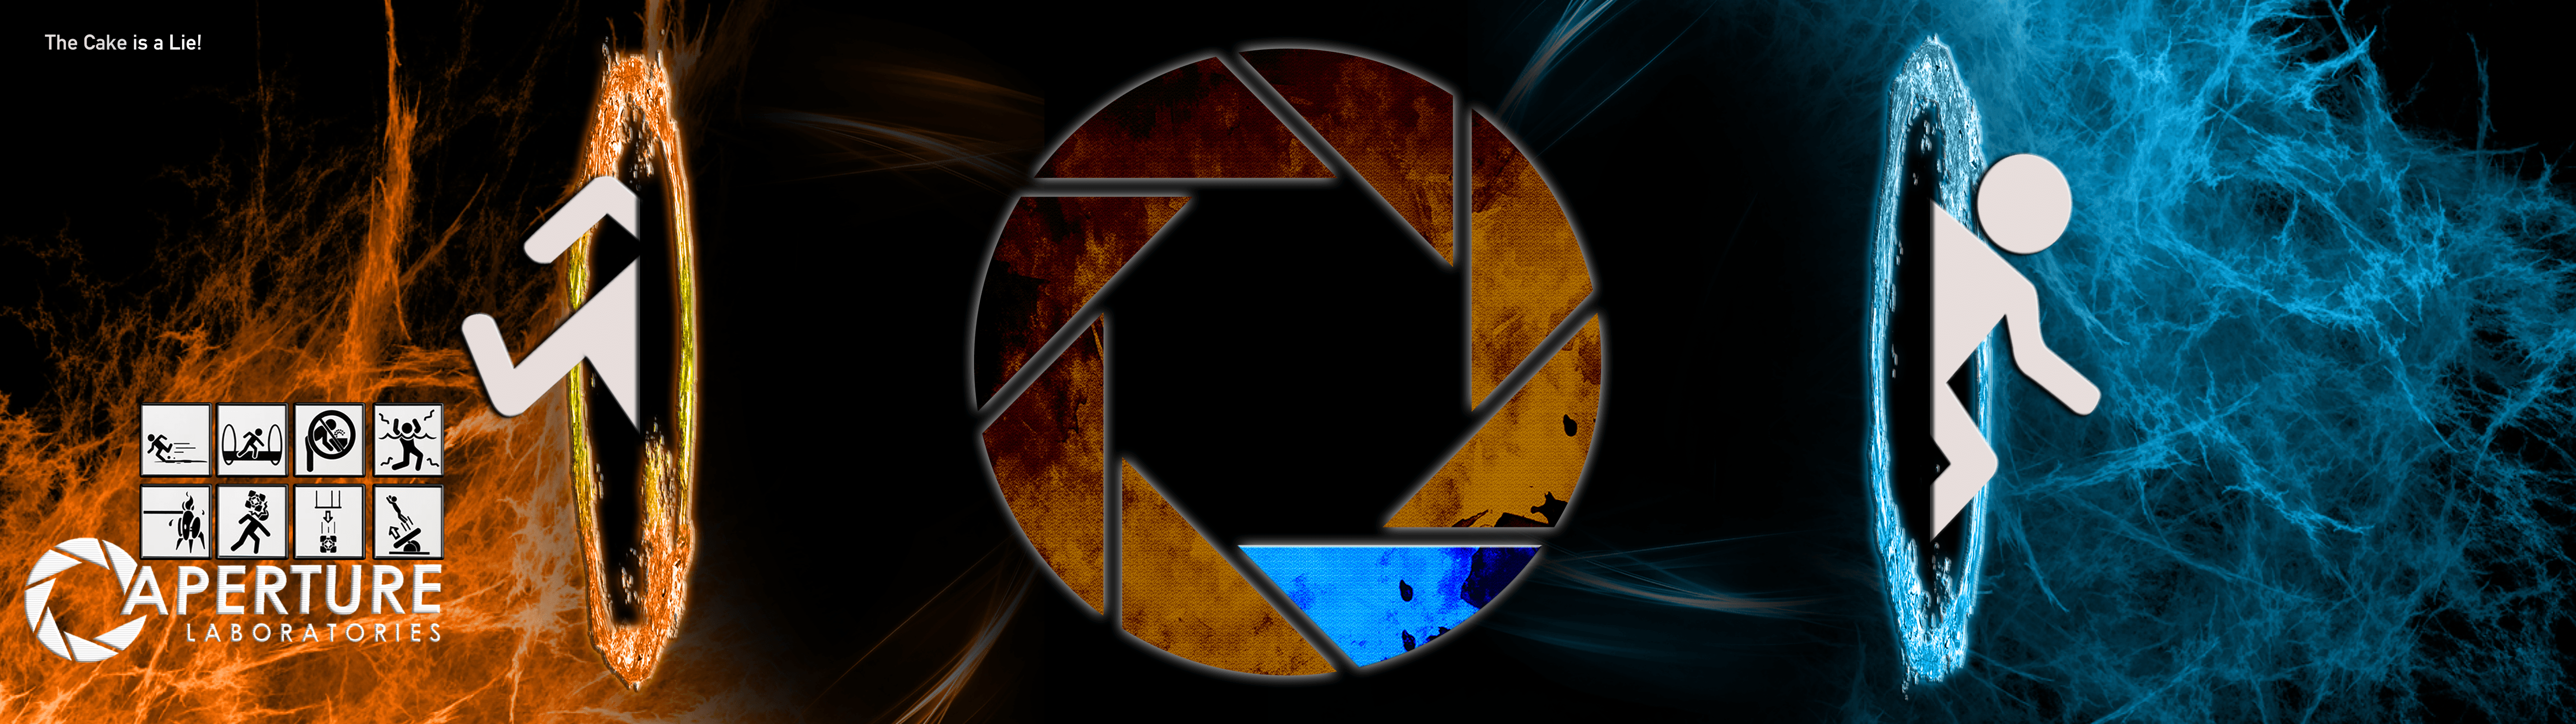 Portal Dual Screen Wallpaper v20 by iwalkwithedead 5120x1440